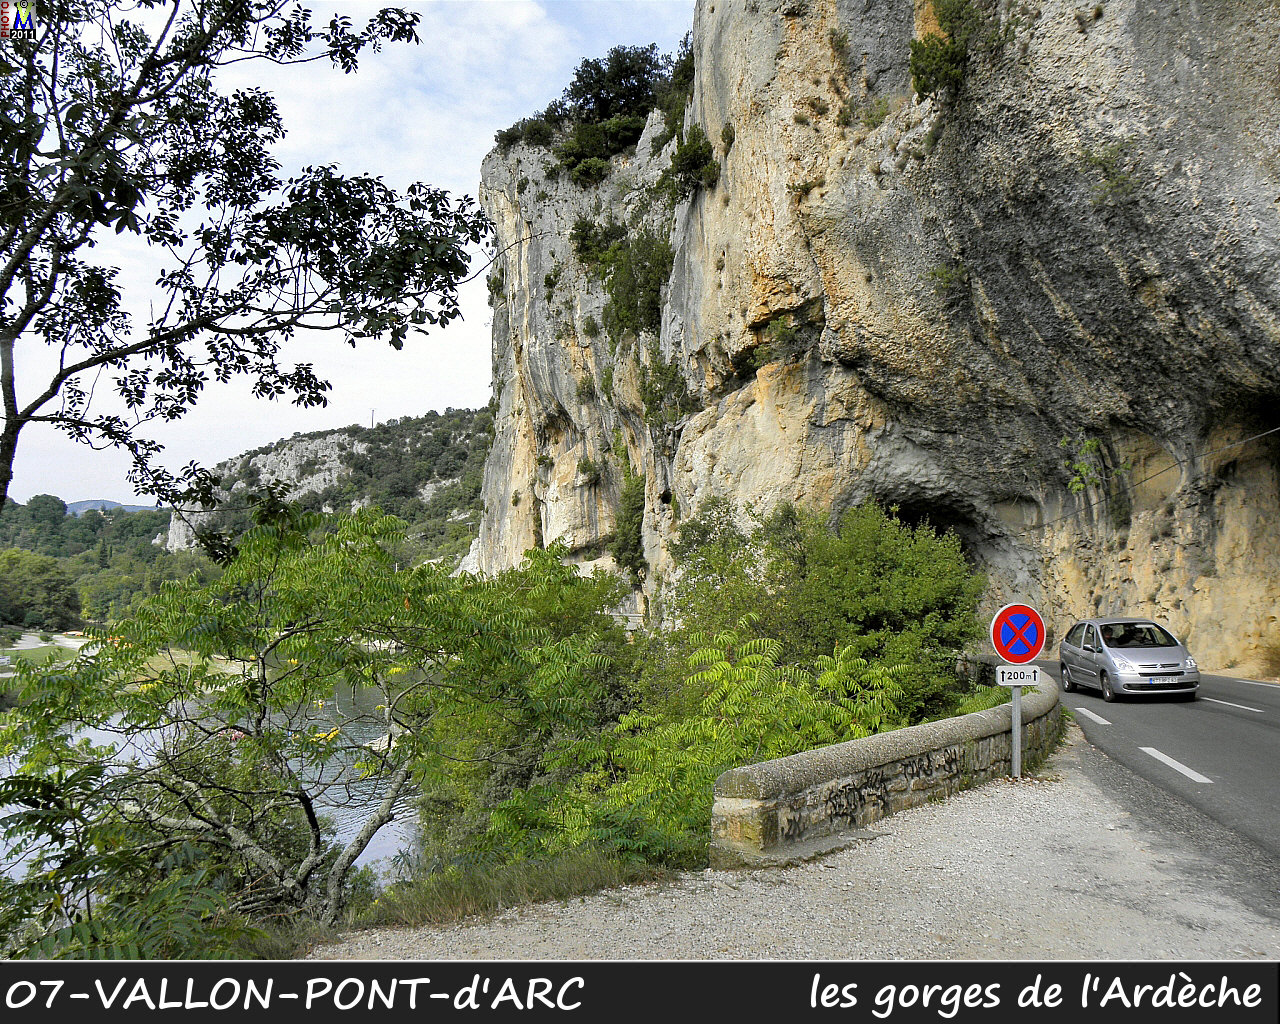 07VALLON-PONT-ARC_gorges_102.jpg